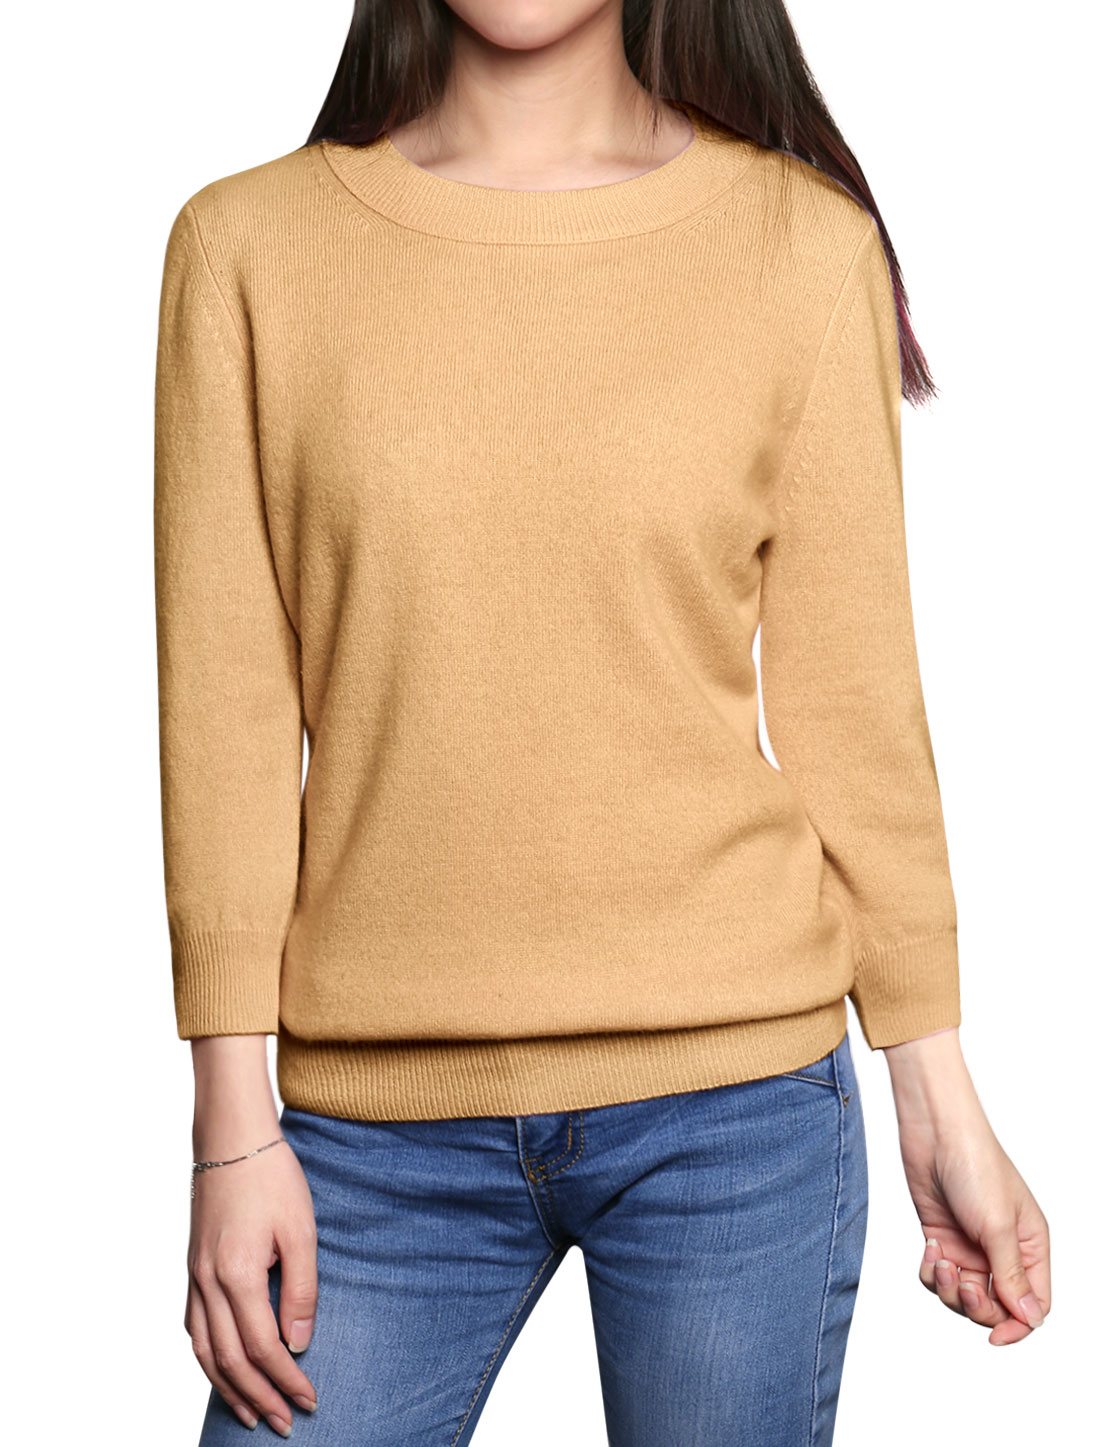 Women Crew Neck Slim Fit Cashmere Sweater Brown S